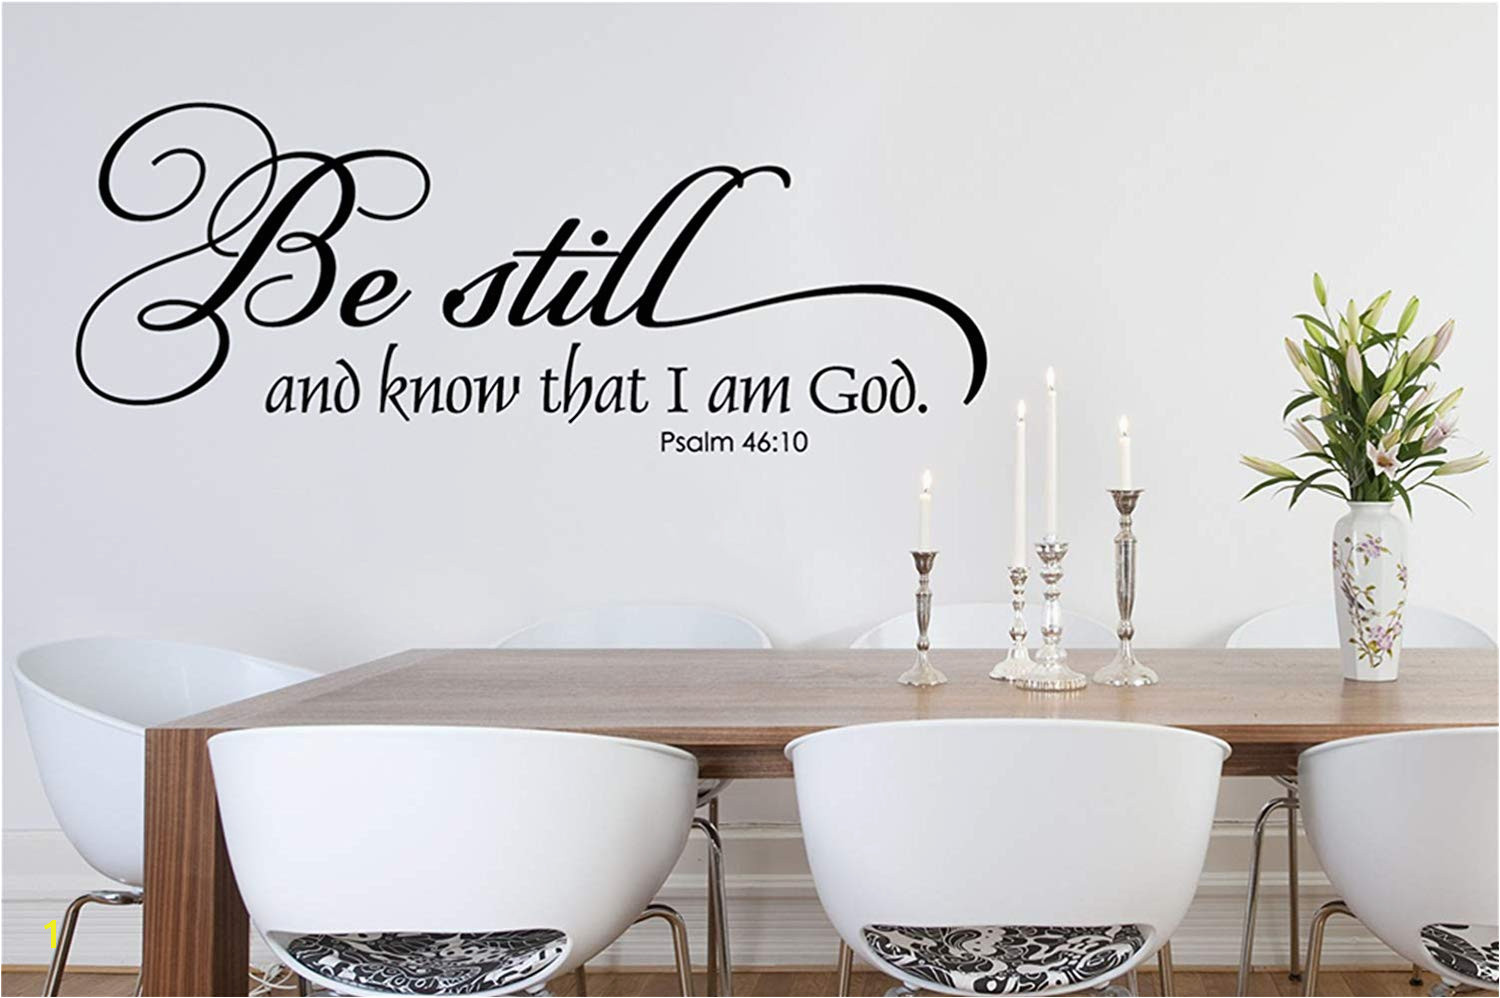 Amazon Vinyl Removable Wall Stickers Mural Decal Art Family Decals Be Still and Know Than I Am God Christian Wall Decal Home & Kitchen